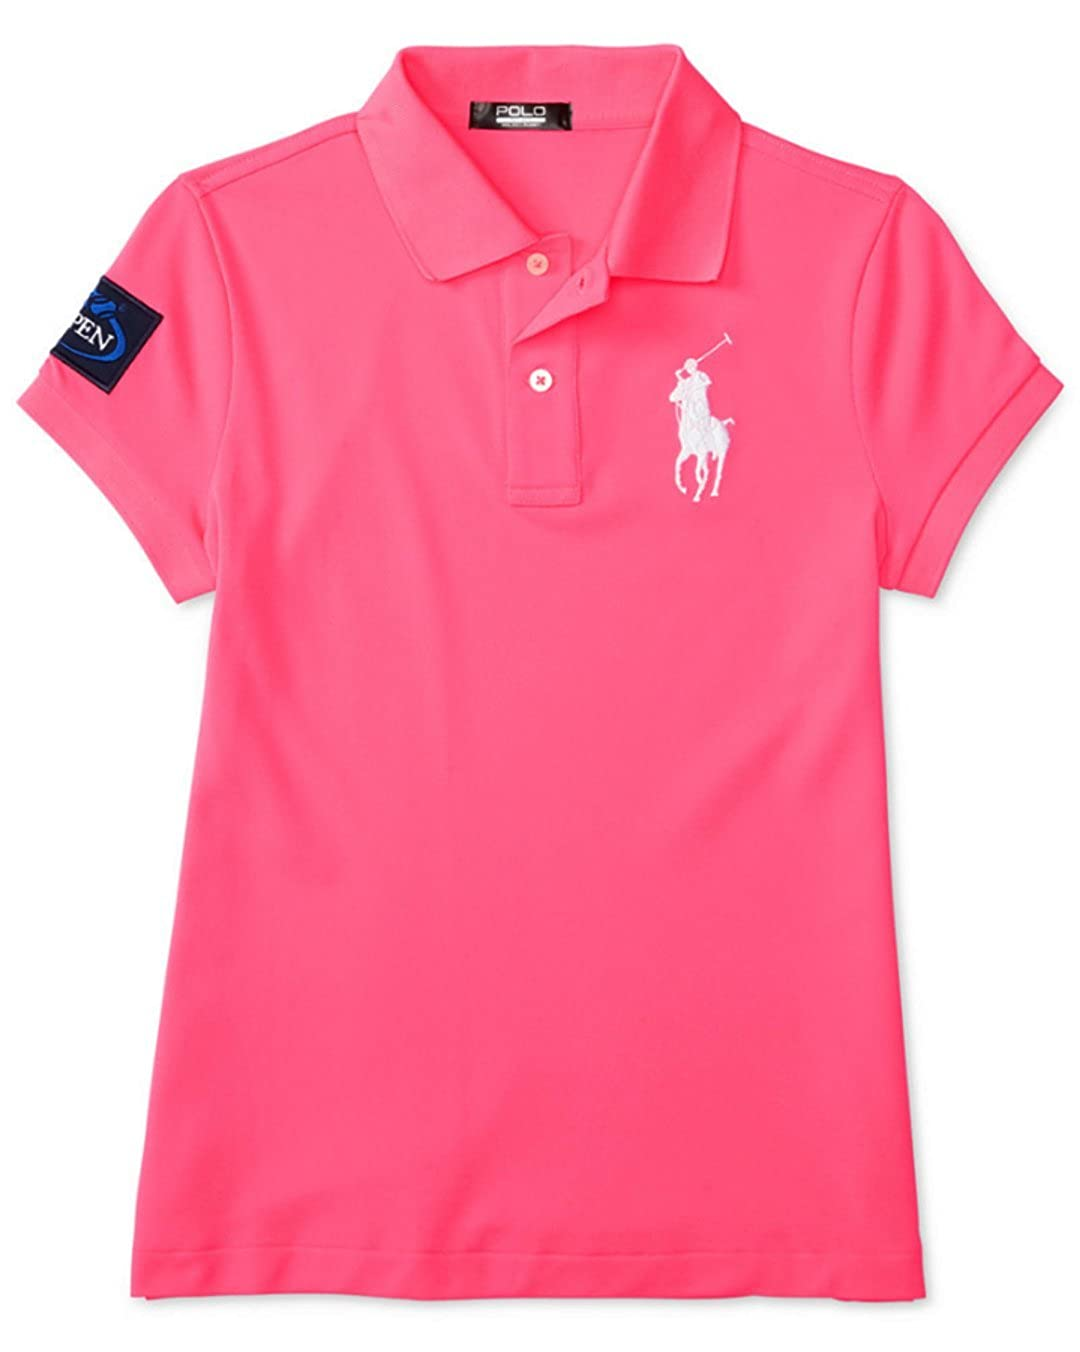 219cbde83 Celebrating the 2016 US Open, this polo shirt merges moisture-wicking  performance mesh with iconic style, making it perfect for cheering from the  stands or ...